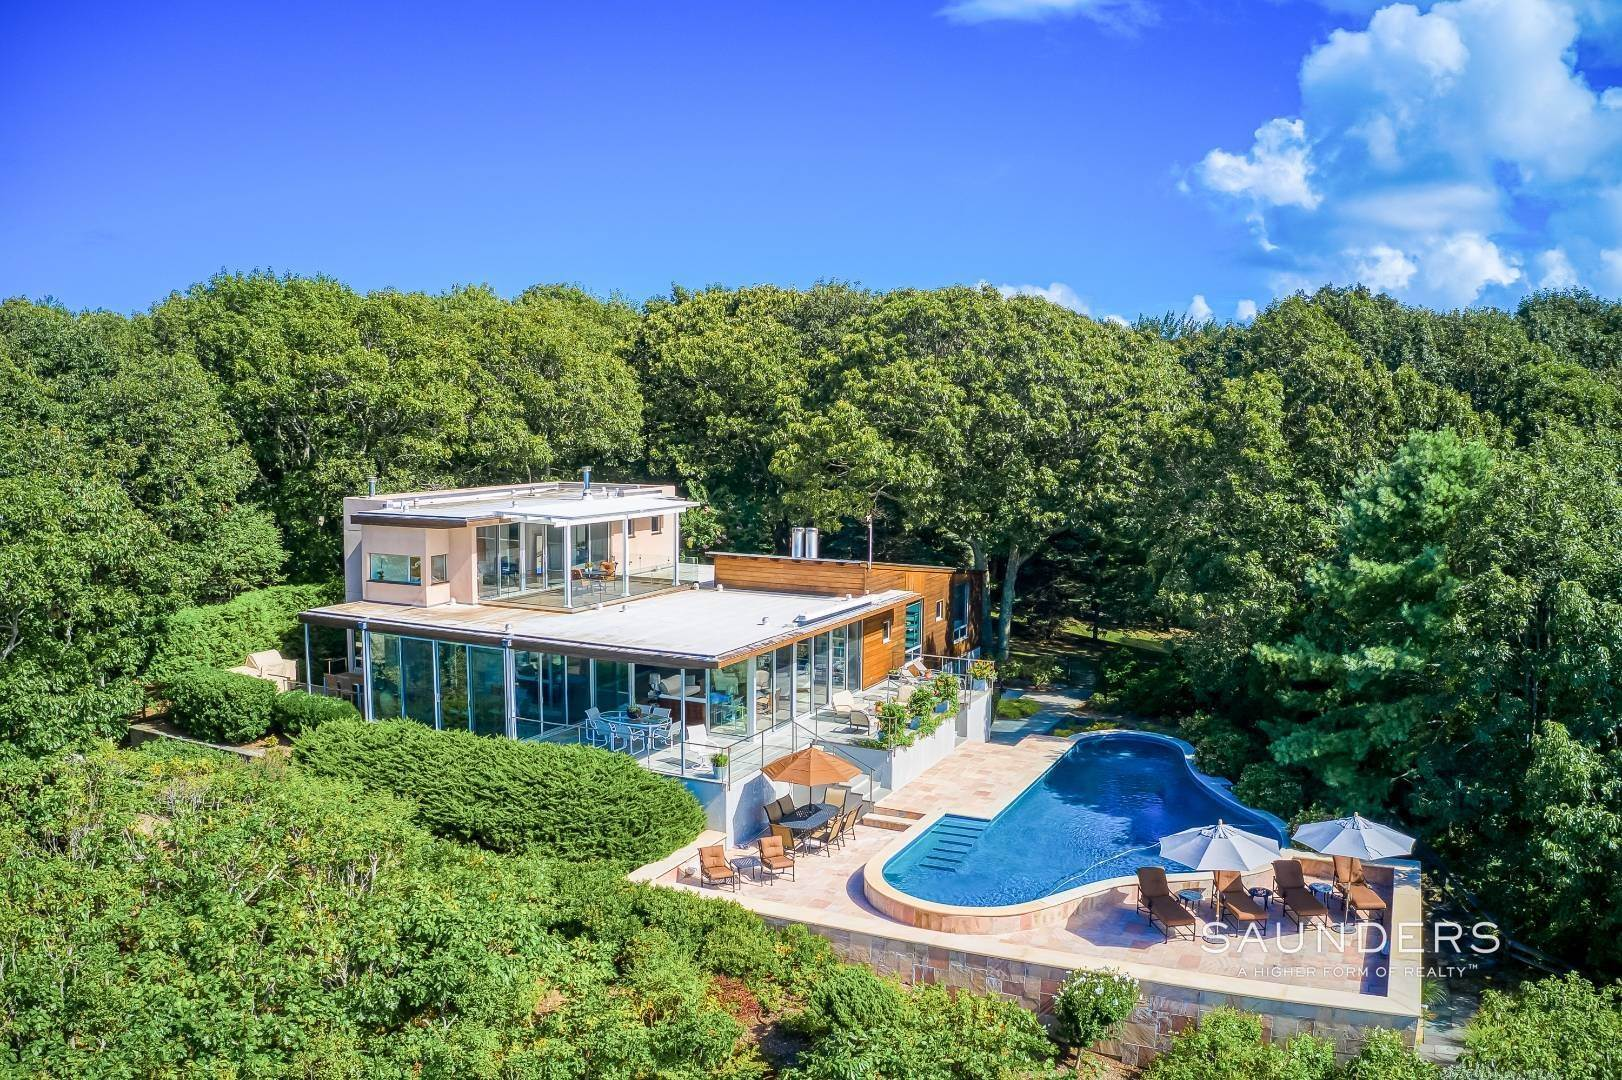 Single Family Homes for Sale at Shelter Island Classic Modern 42 Prospect Avenue And 23 Serpentine Drive, Shelter Island Heights, Shelter Island, NY 11965